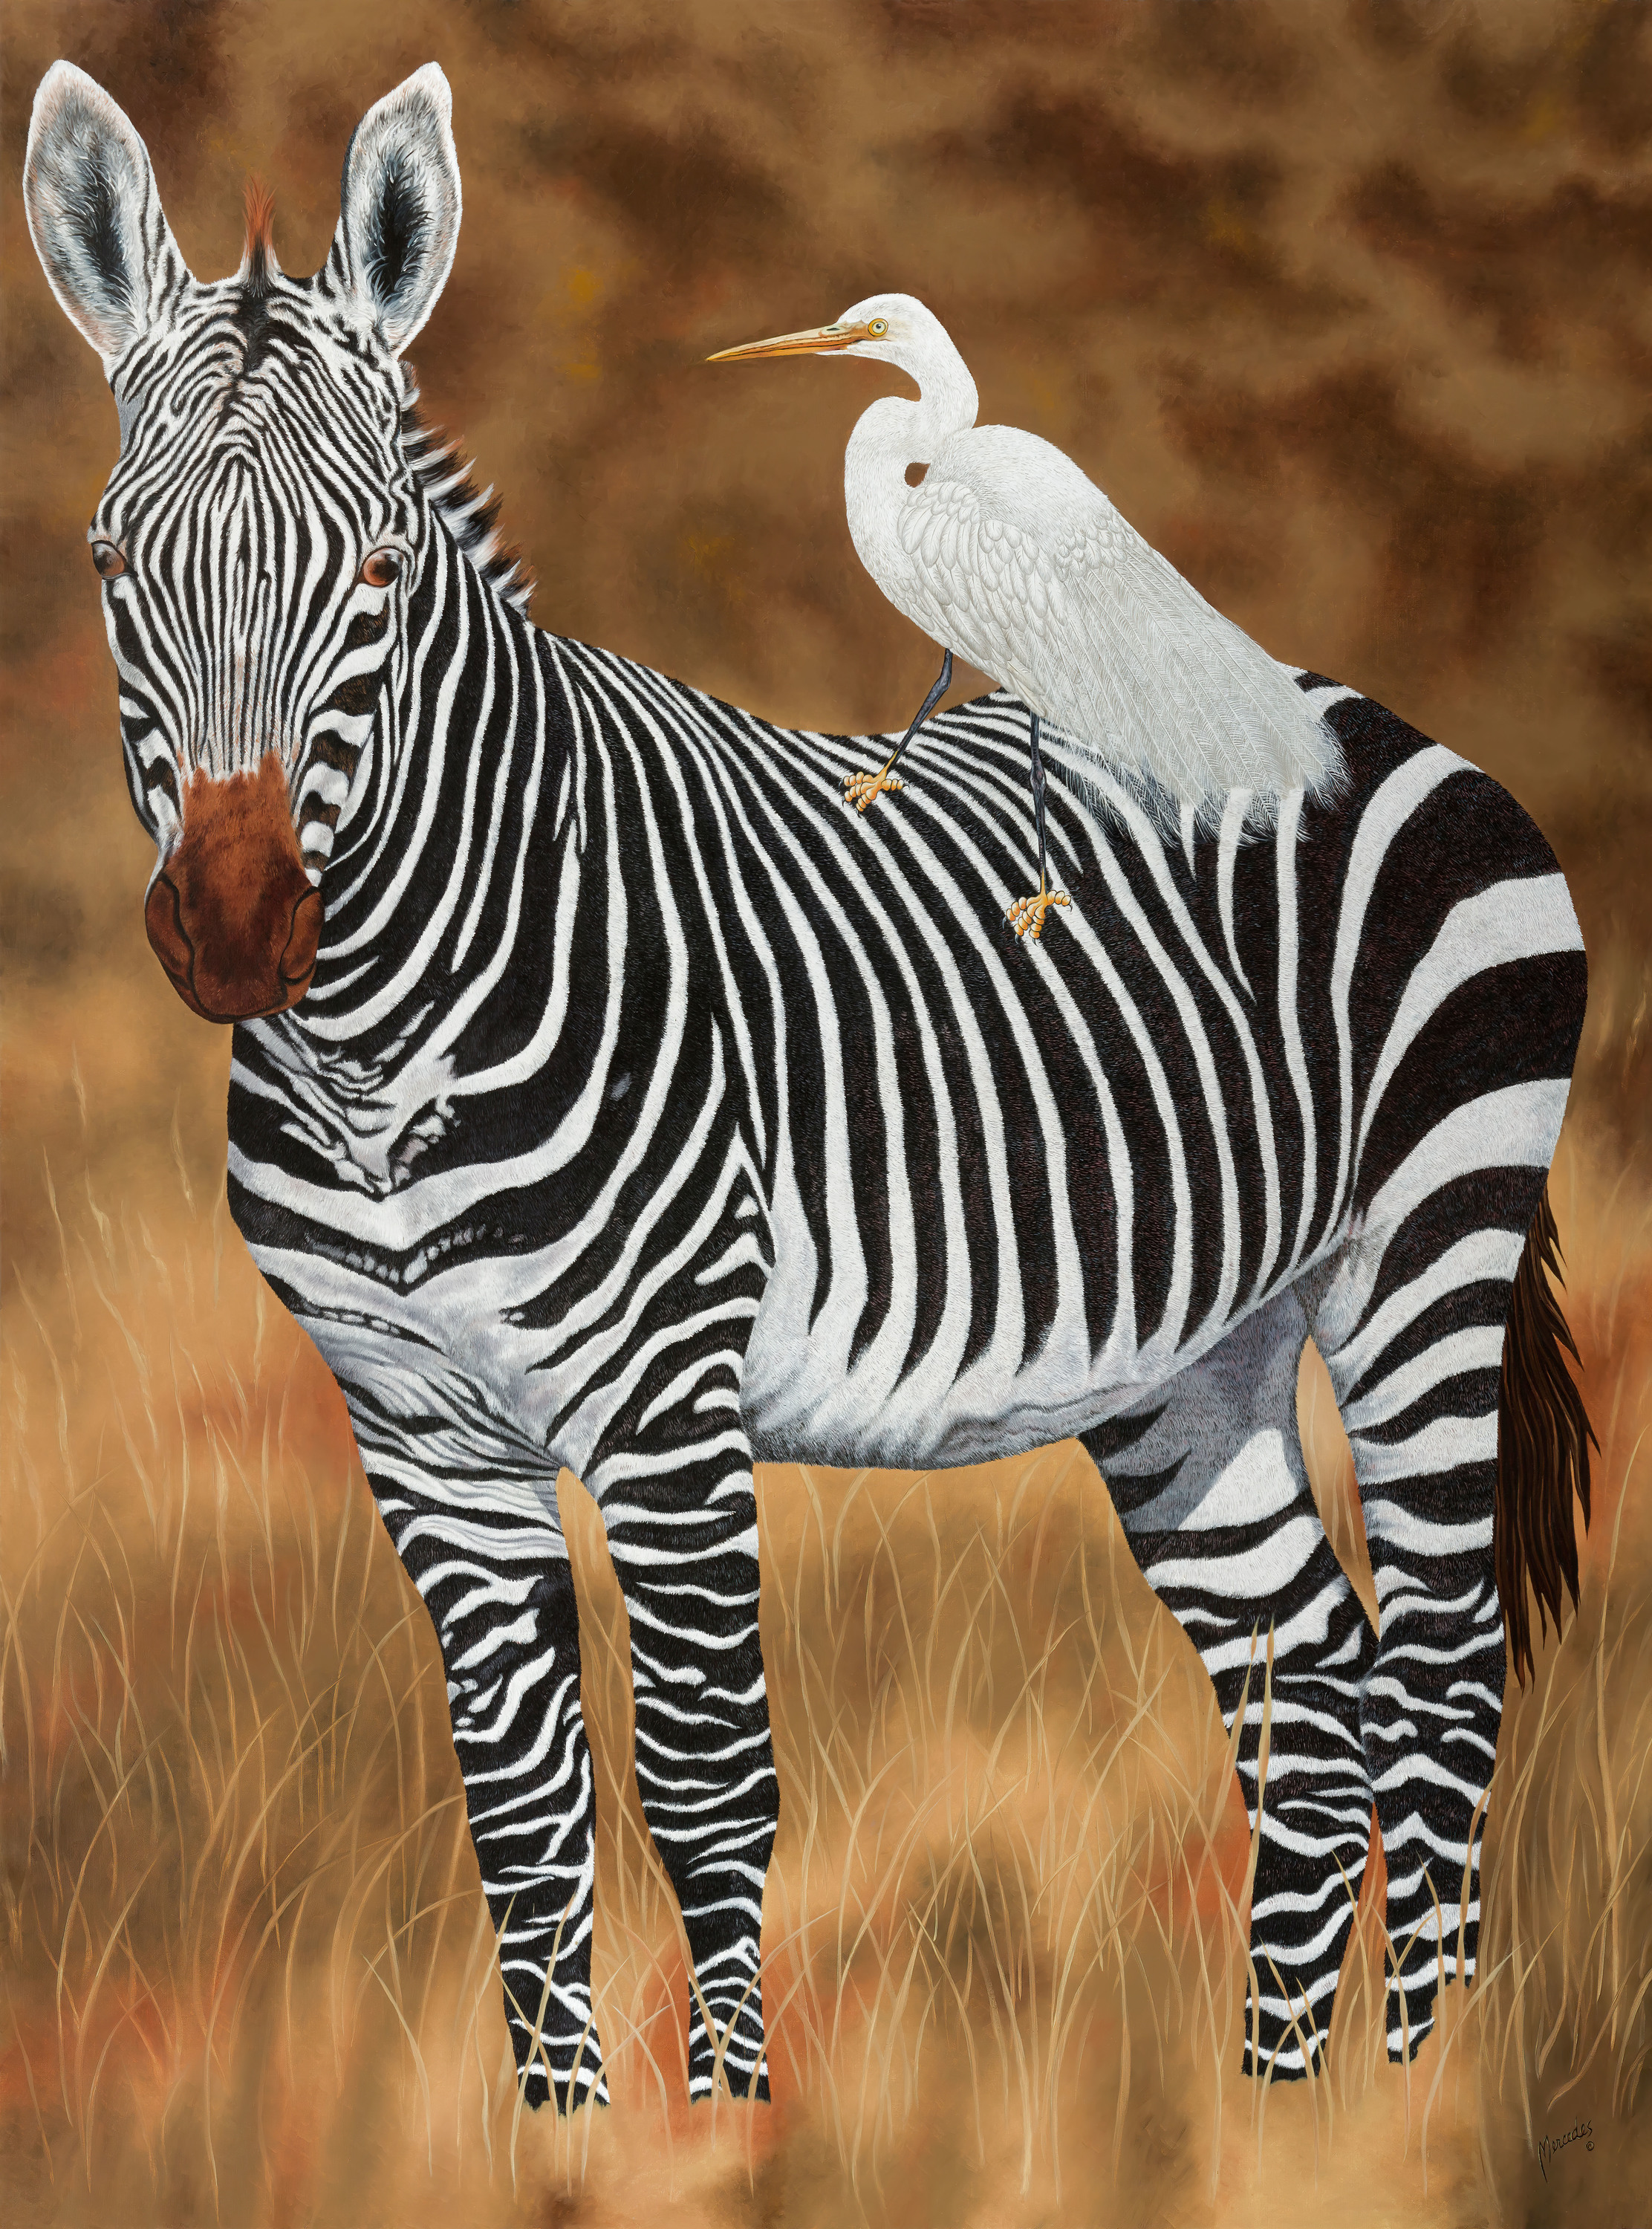 Zebra and egret stitched x3 sized 36 x 26 sharpen  1 small file under 20 mb guiavy